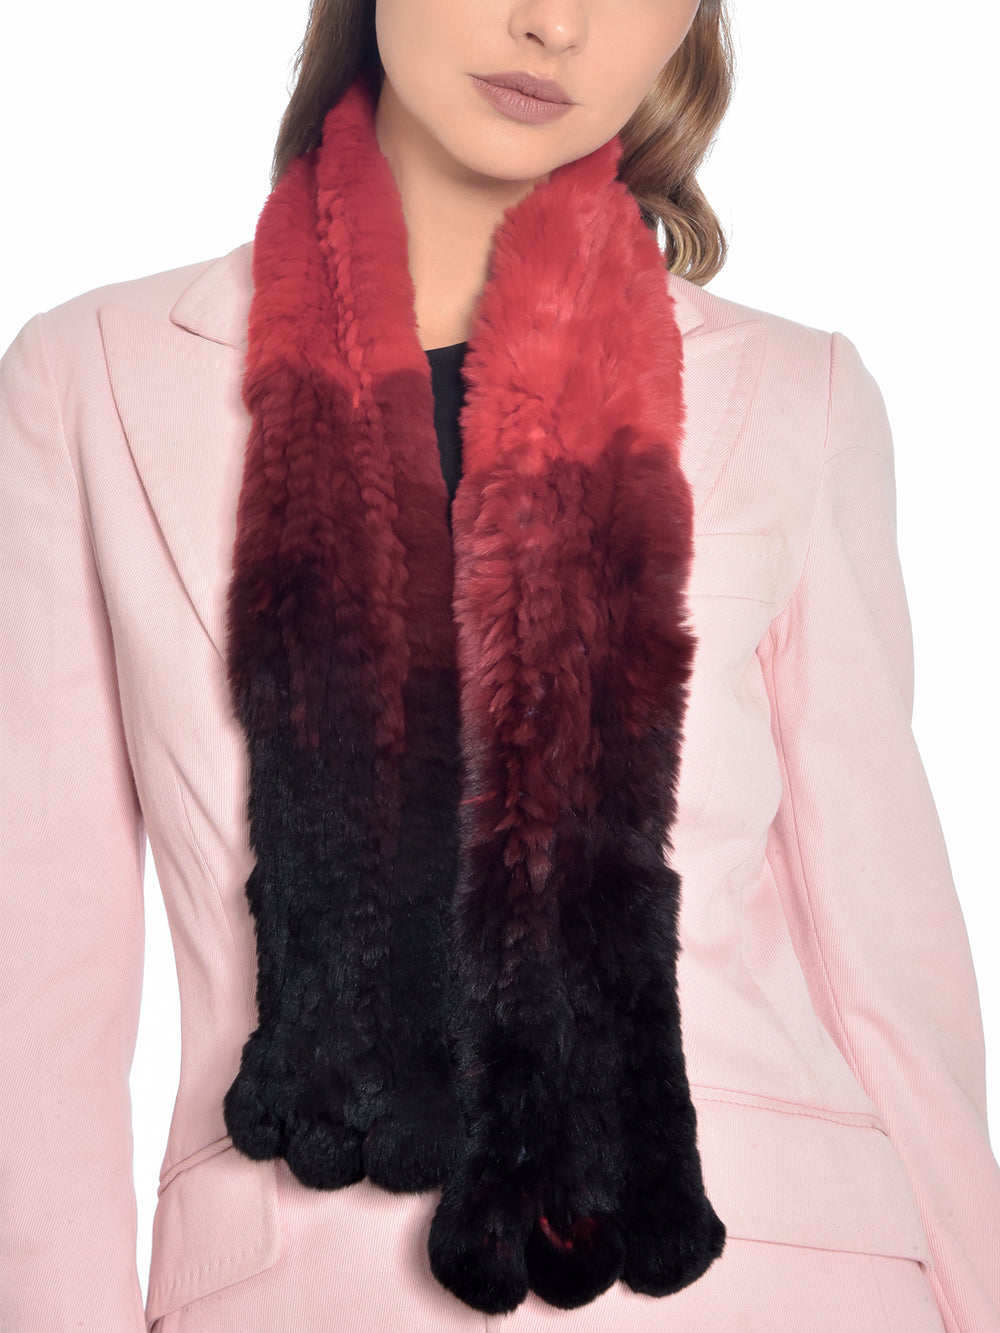 Red Ombre Rabbit Fur Scarf, CHIZELLE - elilhaam.com